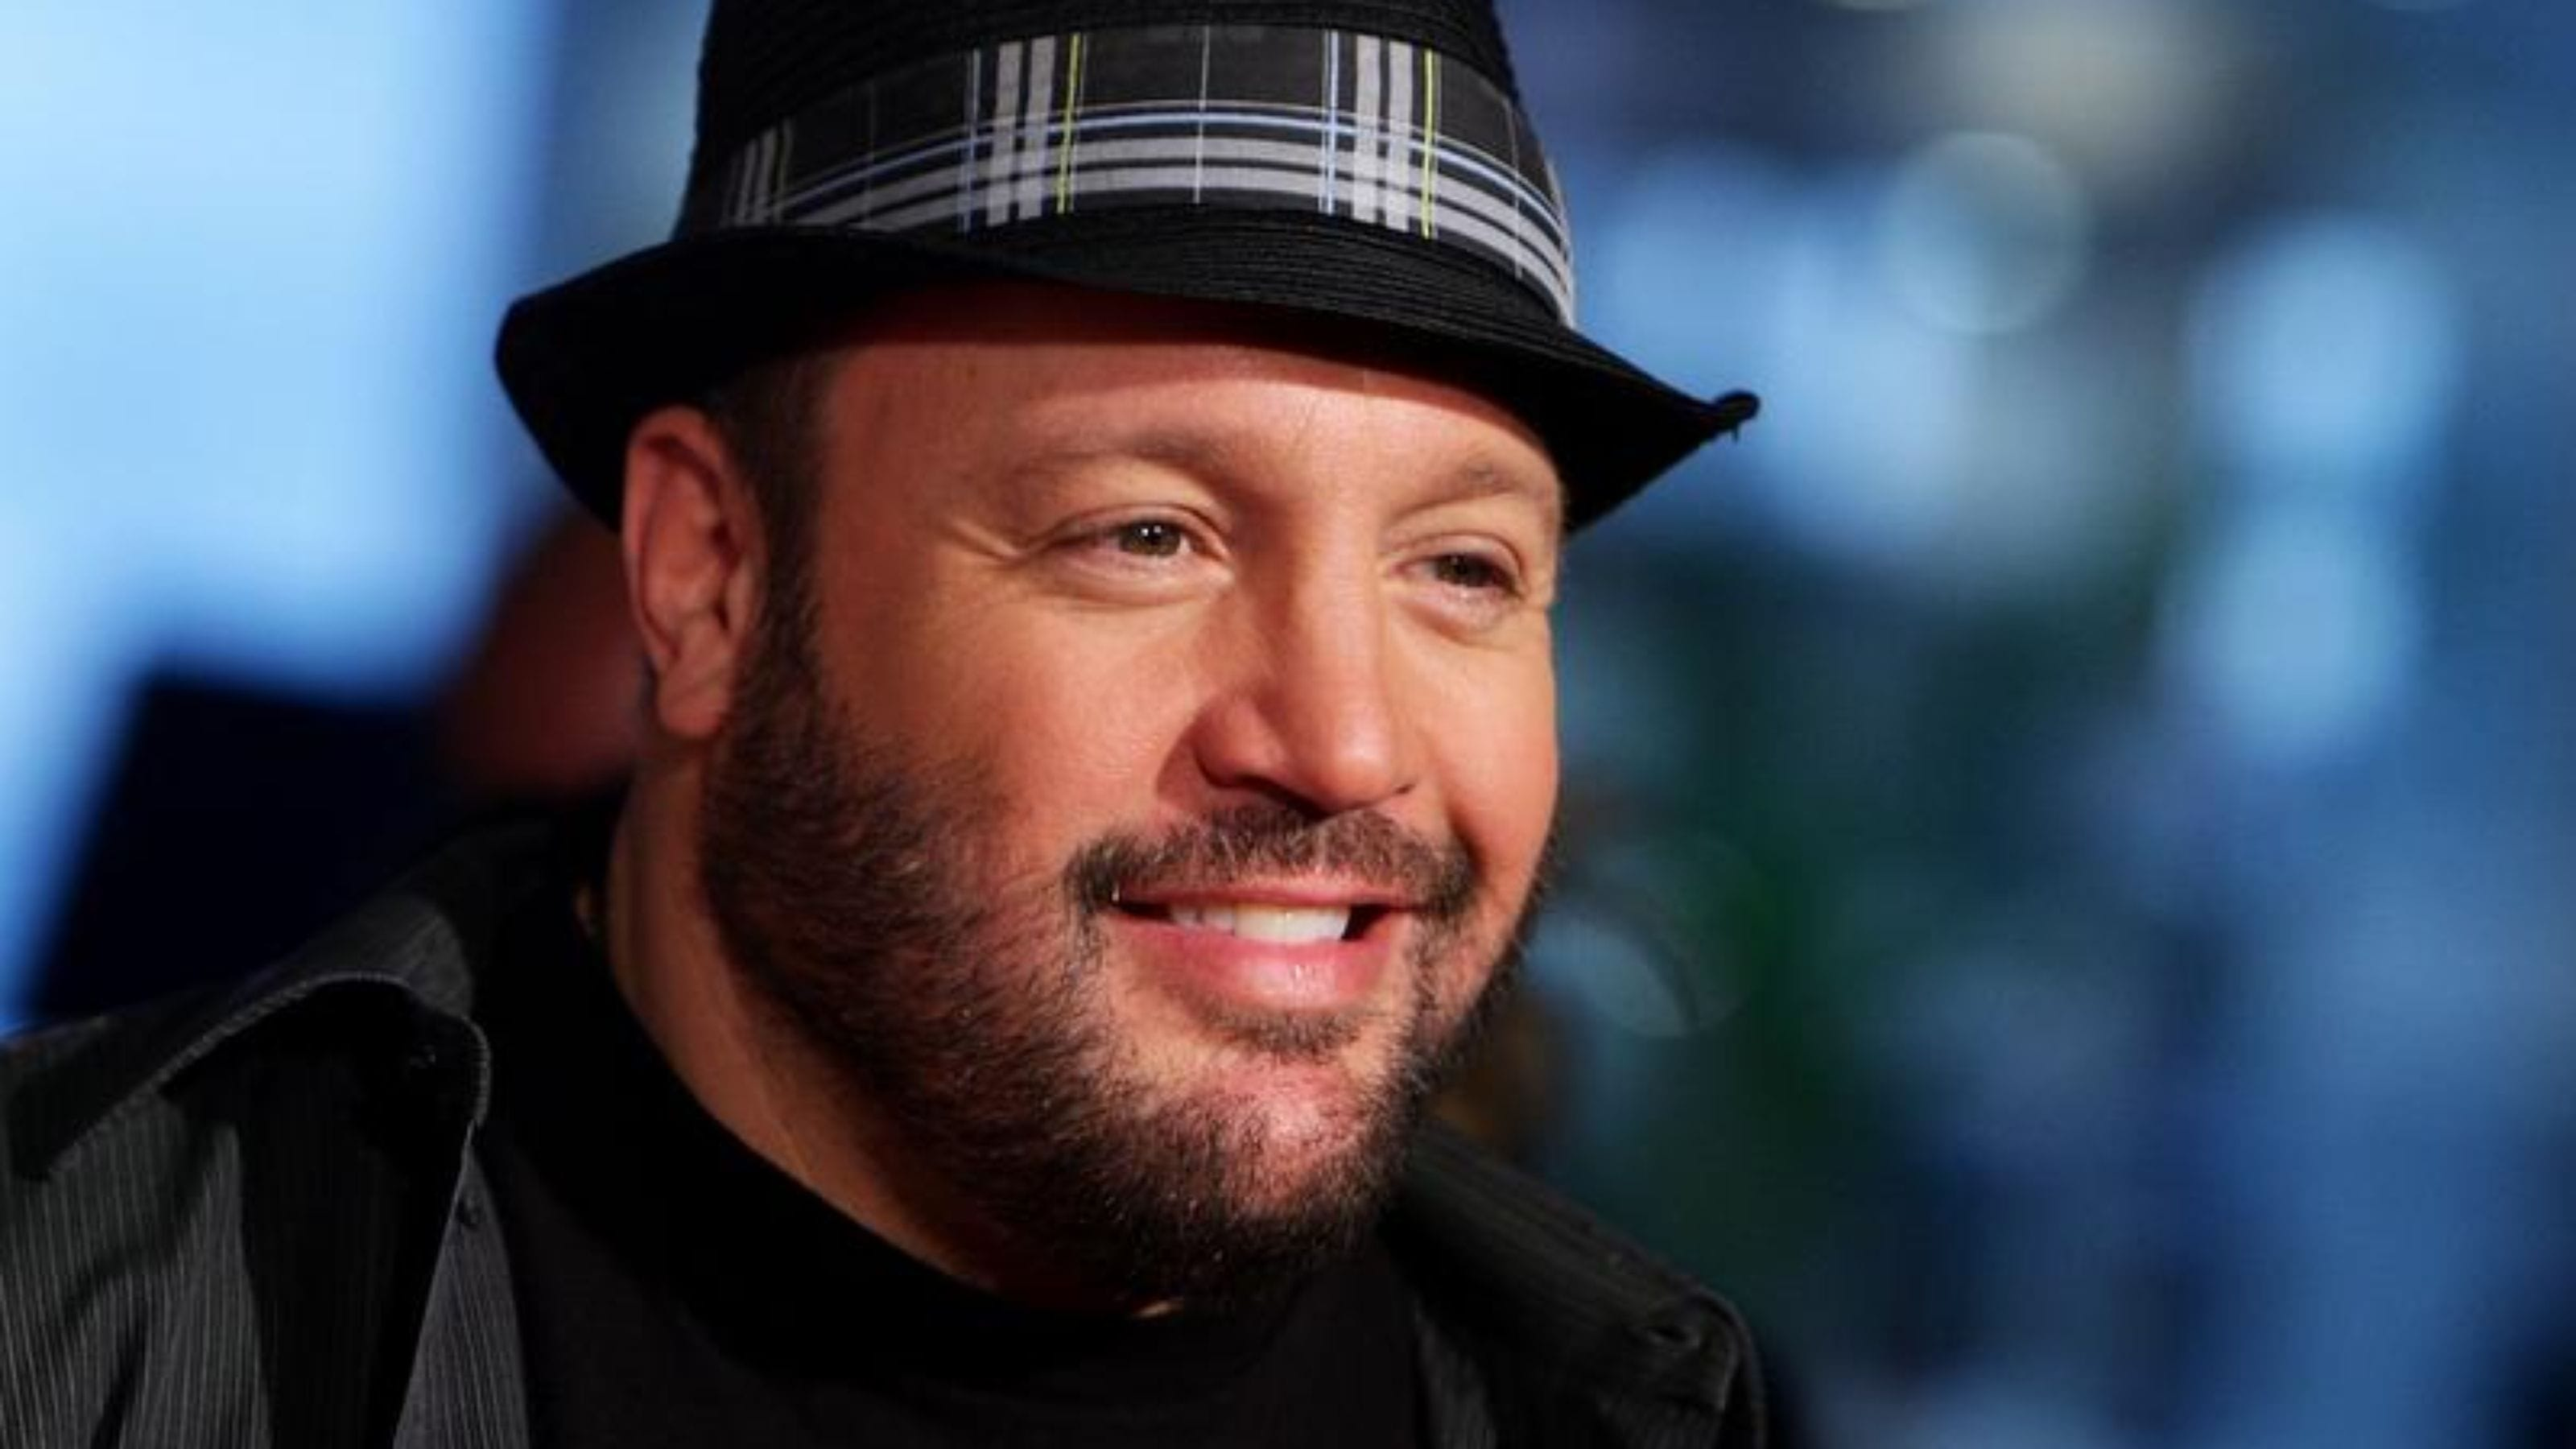 Kevin James Wallpapers hd